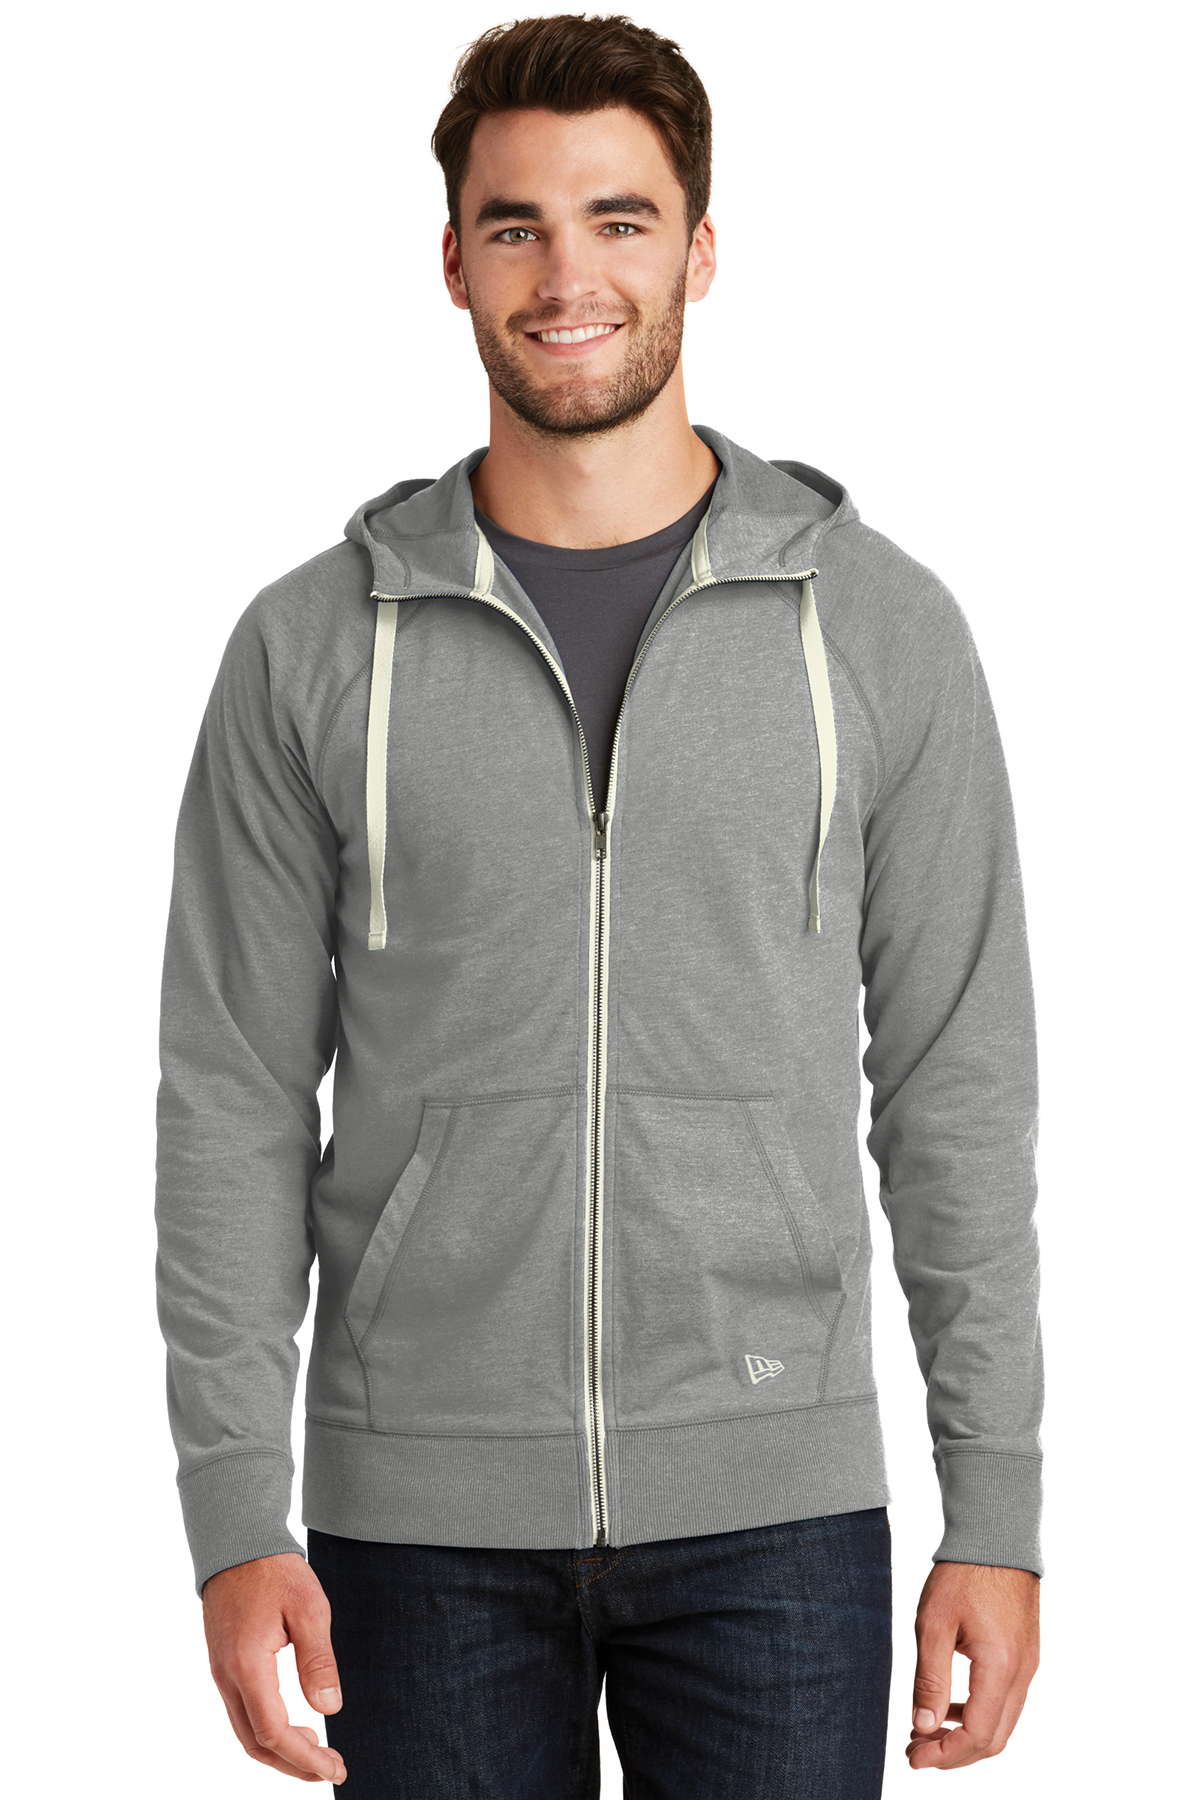 New Era NEA122 - Men's Sueded Cotton Full Zip Hoodie